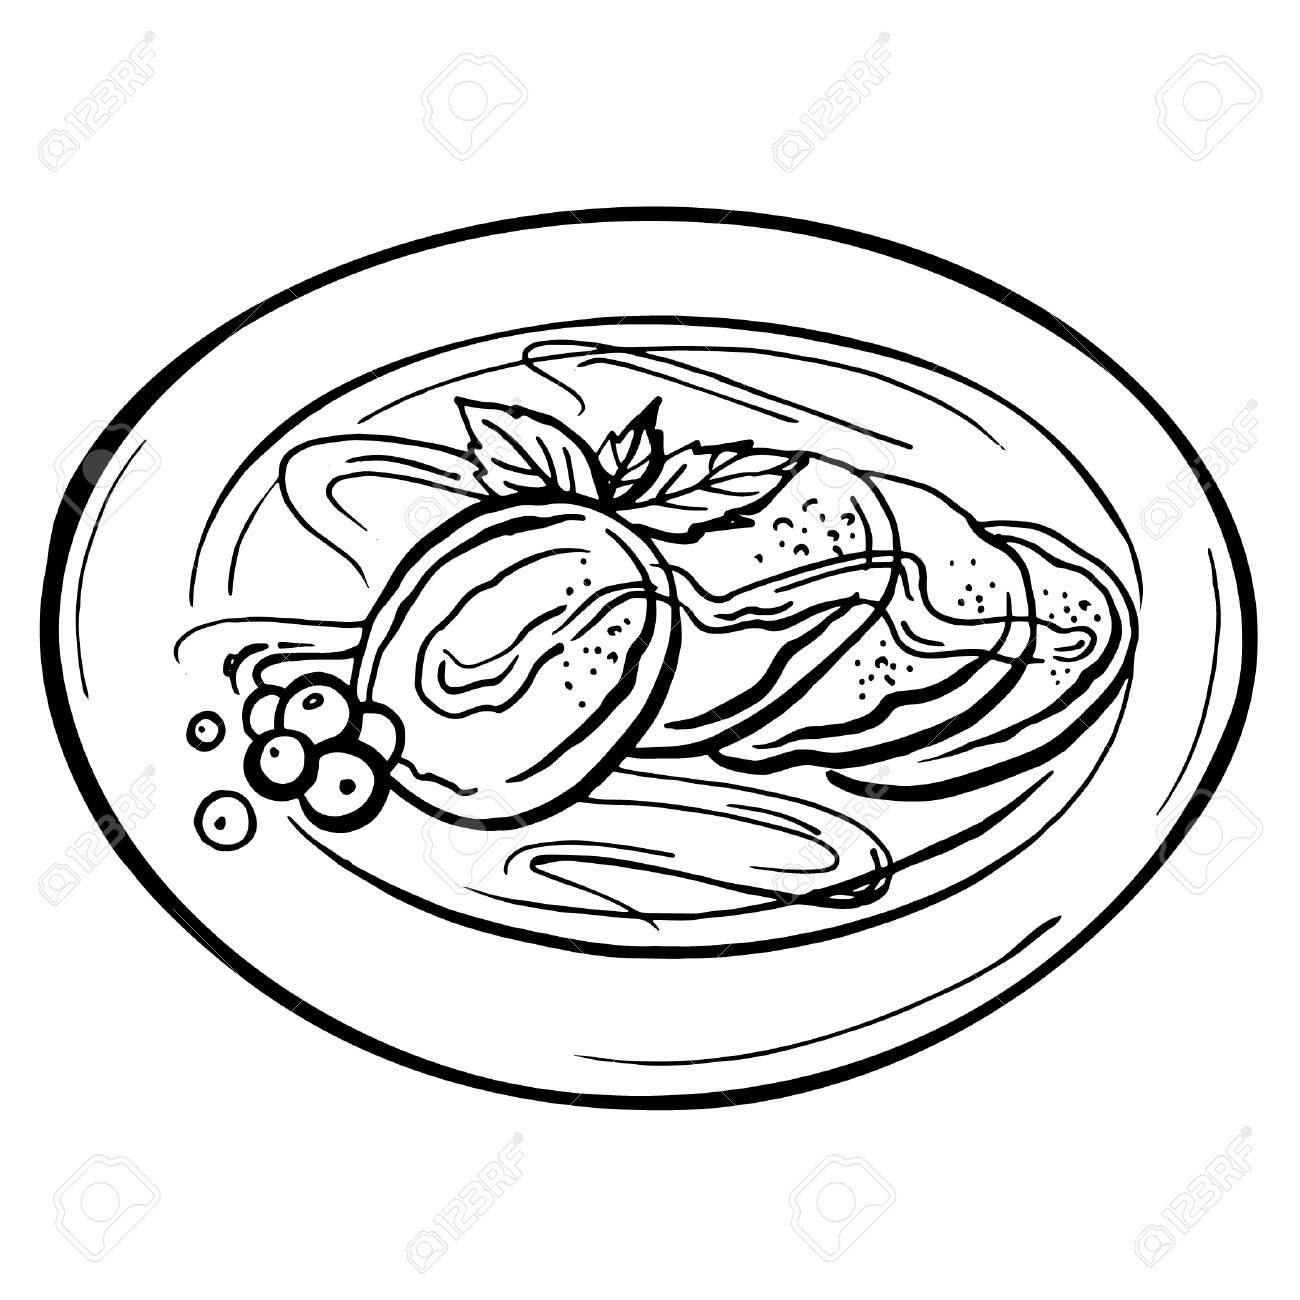 1300x1300 Pancakes With Fresh Berries On The Plate. Cartoon Sketch Drawn